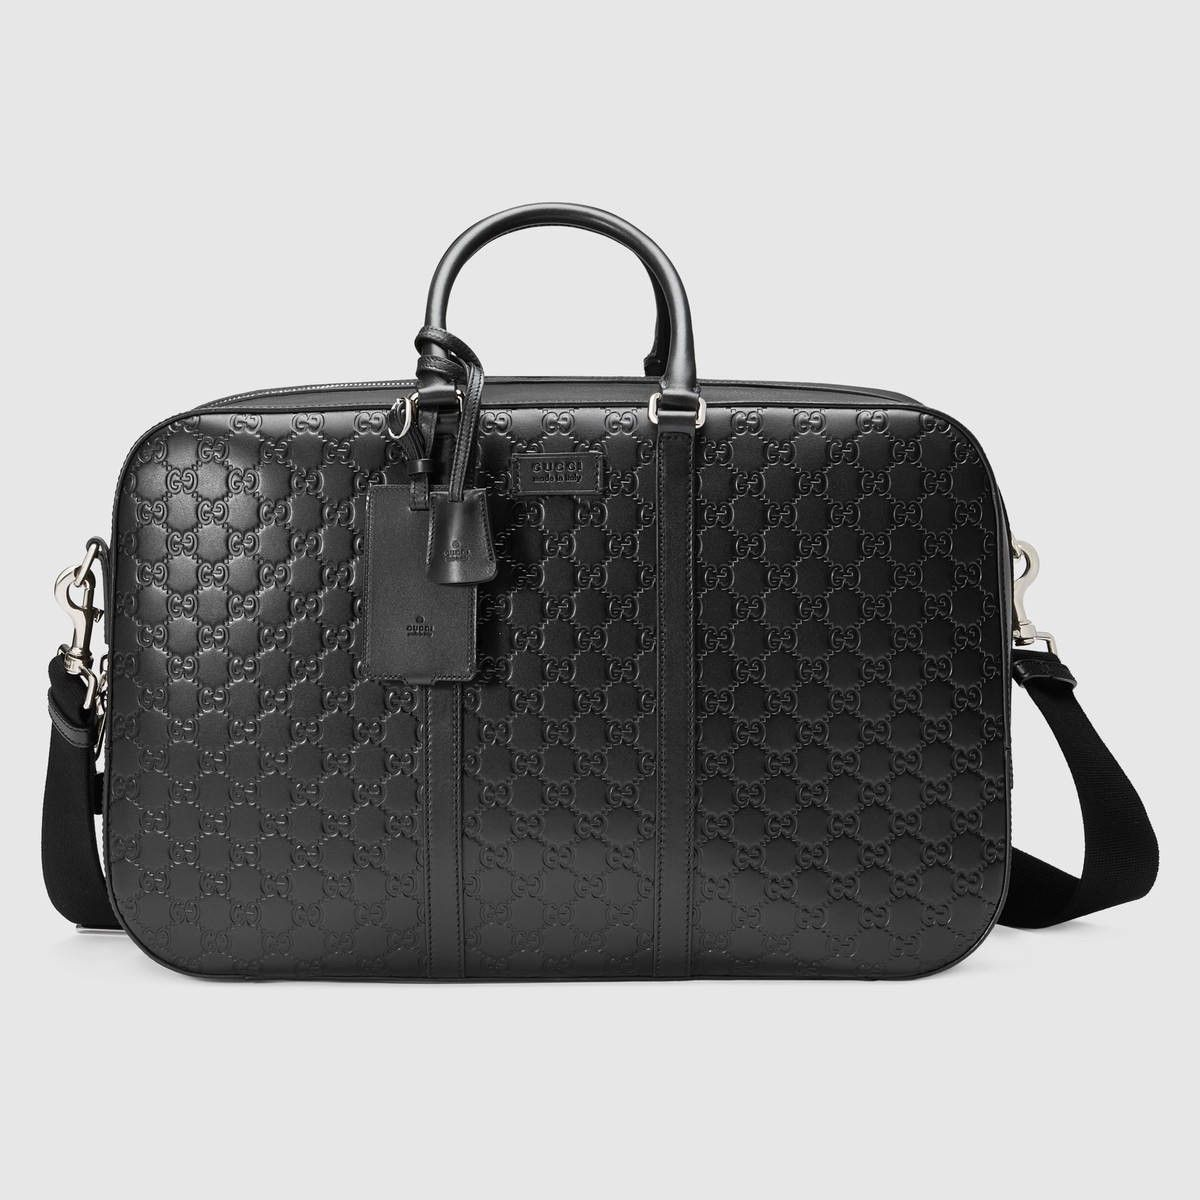 f6a96ed8720 GUCCI Gucci Signature Leather Duffle - Black Gucci Signature.  gucci  bags   shoulder bags  hand bags  nylon  suede  lining